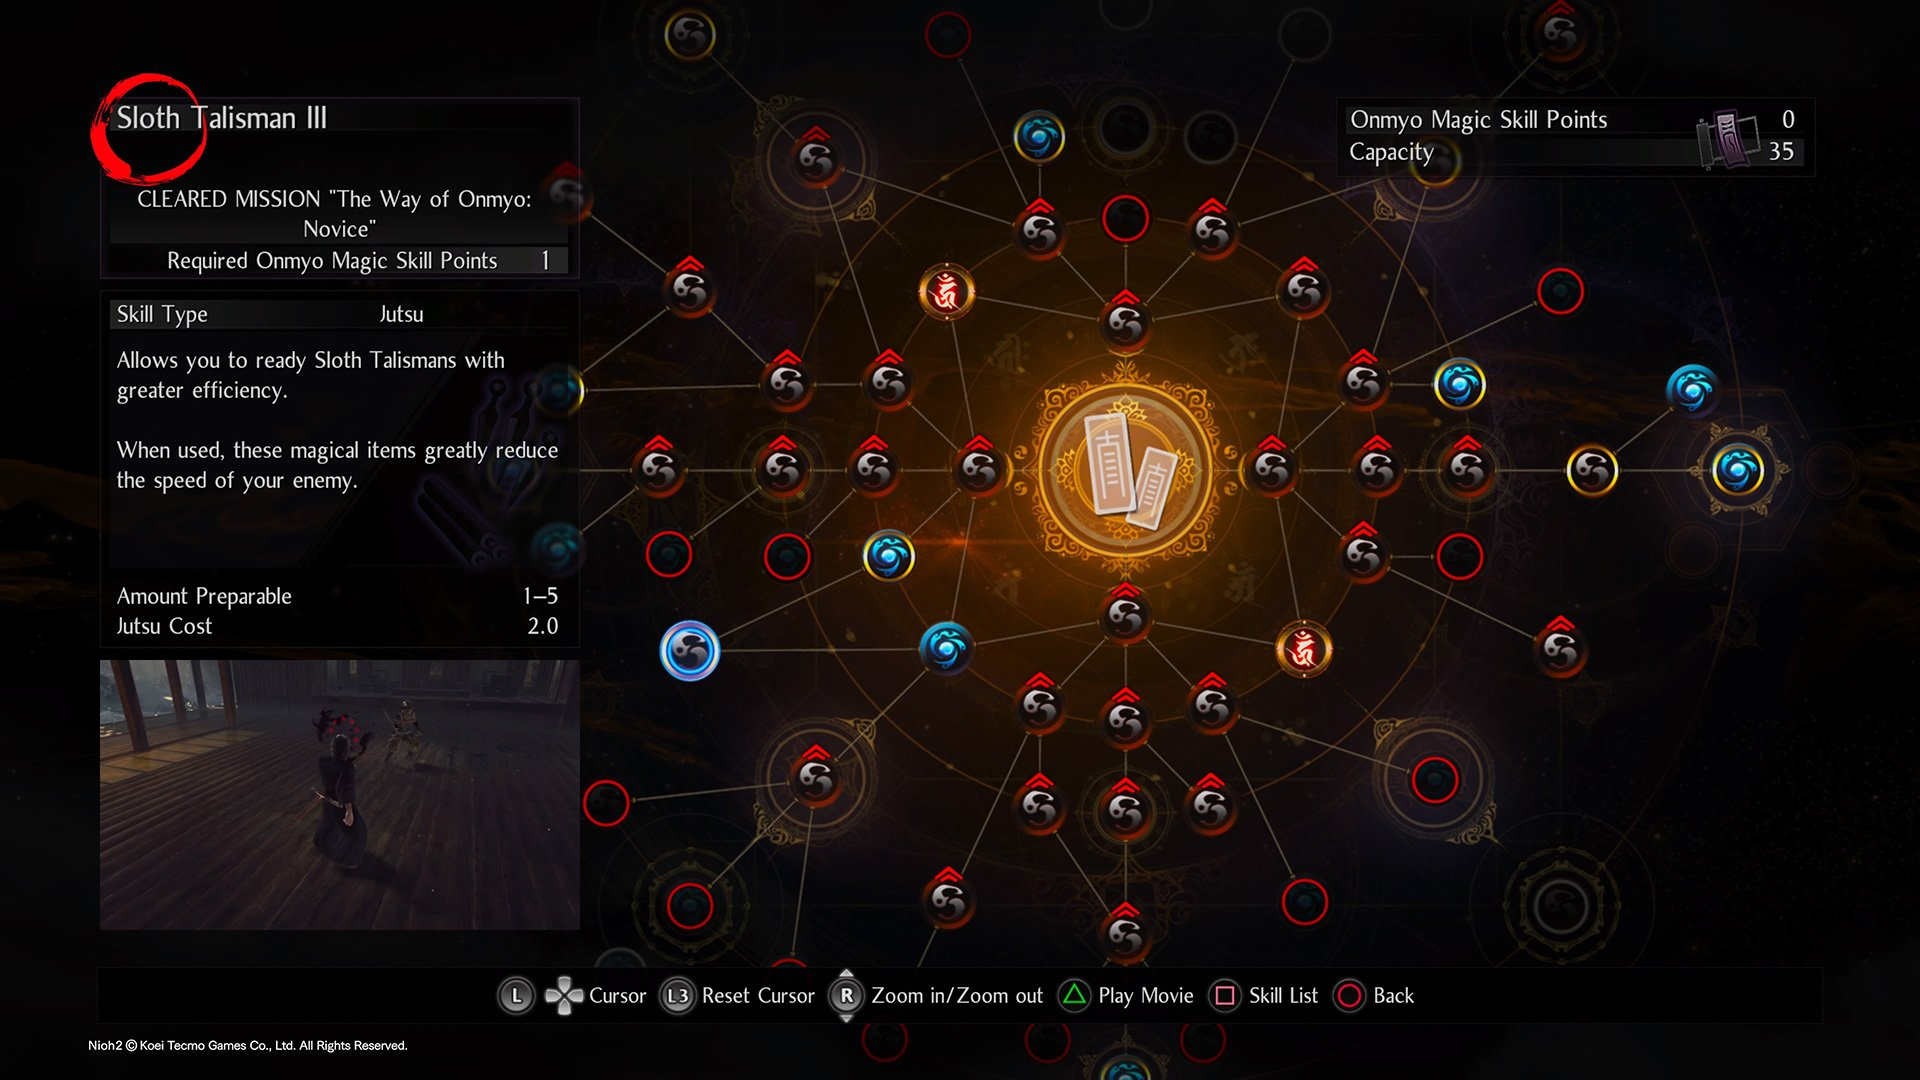 Where to find Sloth Talisman on the Nioh 2 Onmyo Magic skill tree